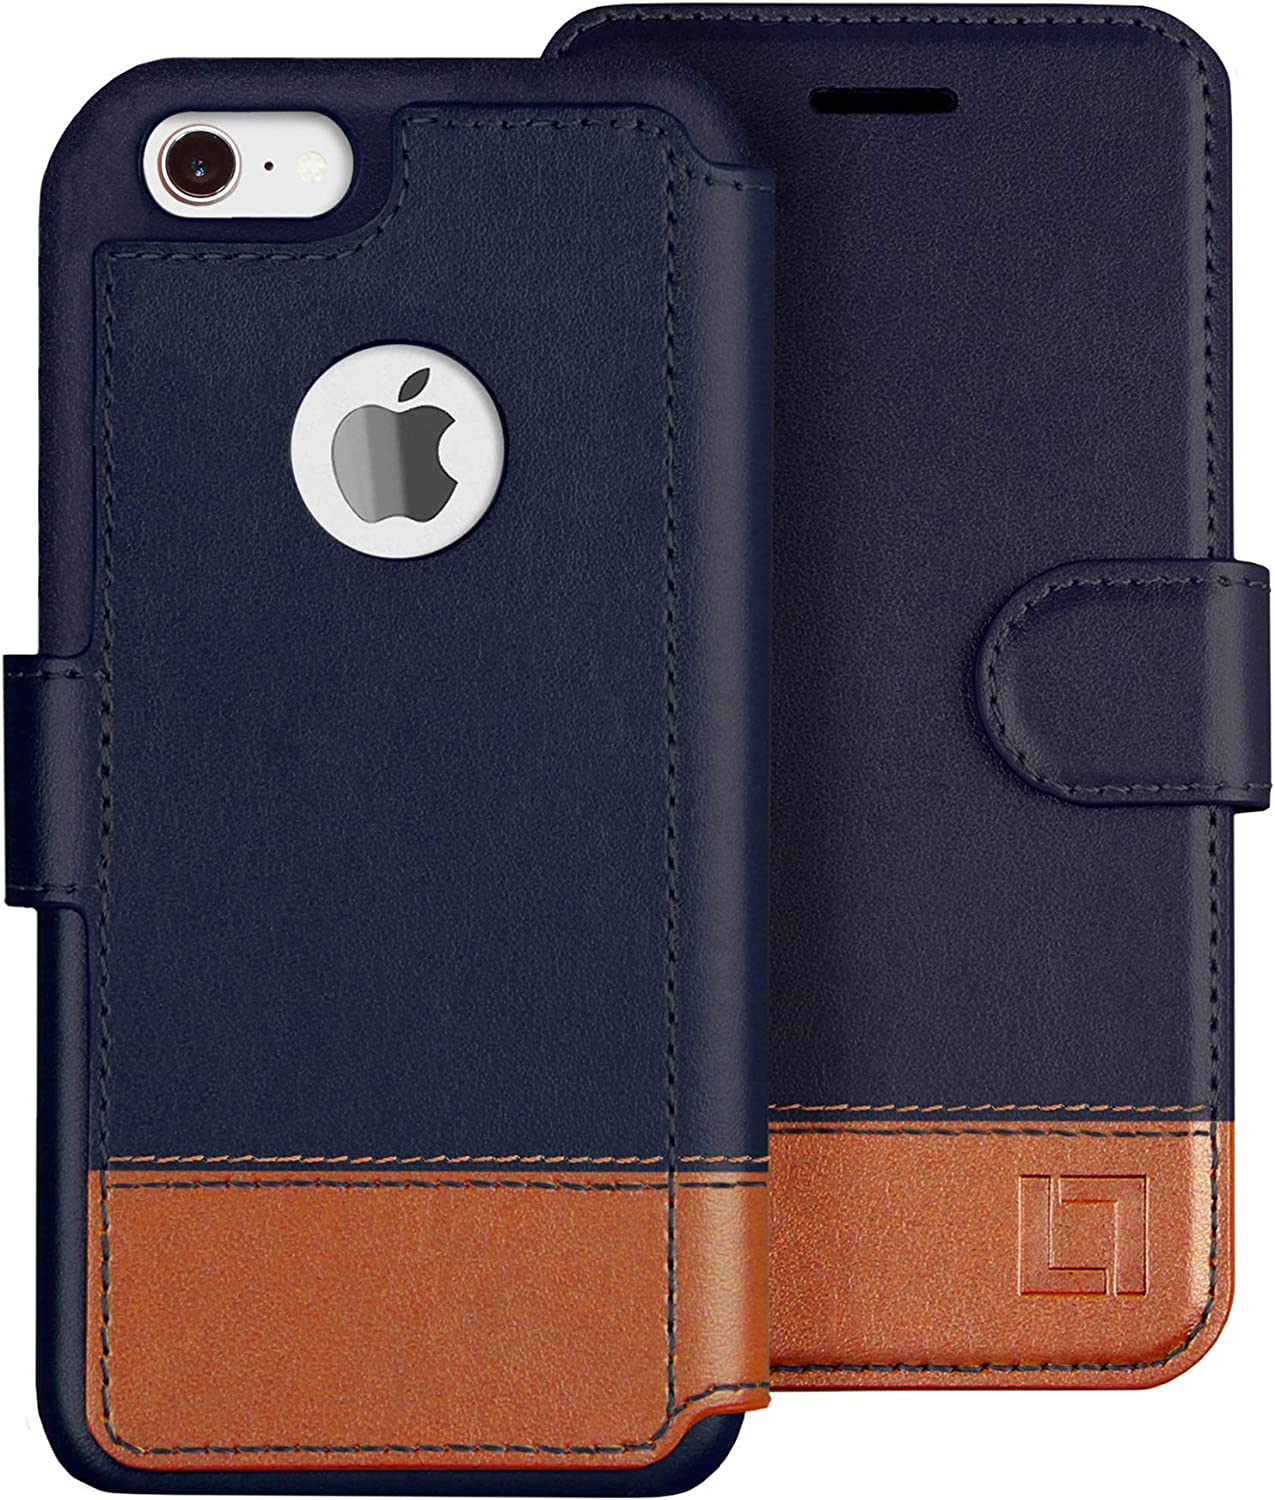 LUPA iPhone 6S Wallet case, iPhone 6 Wallet Case, Durable and Slim, Lightweight with Classic Design & Ultra-Strong Magnetic Closure, Faux Leather, Desert Sky, for Apple iPhone 6s/6